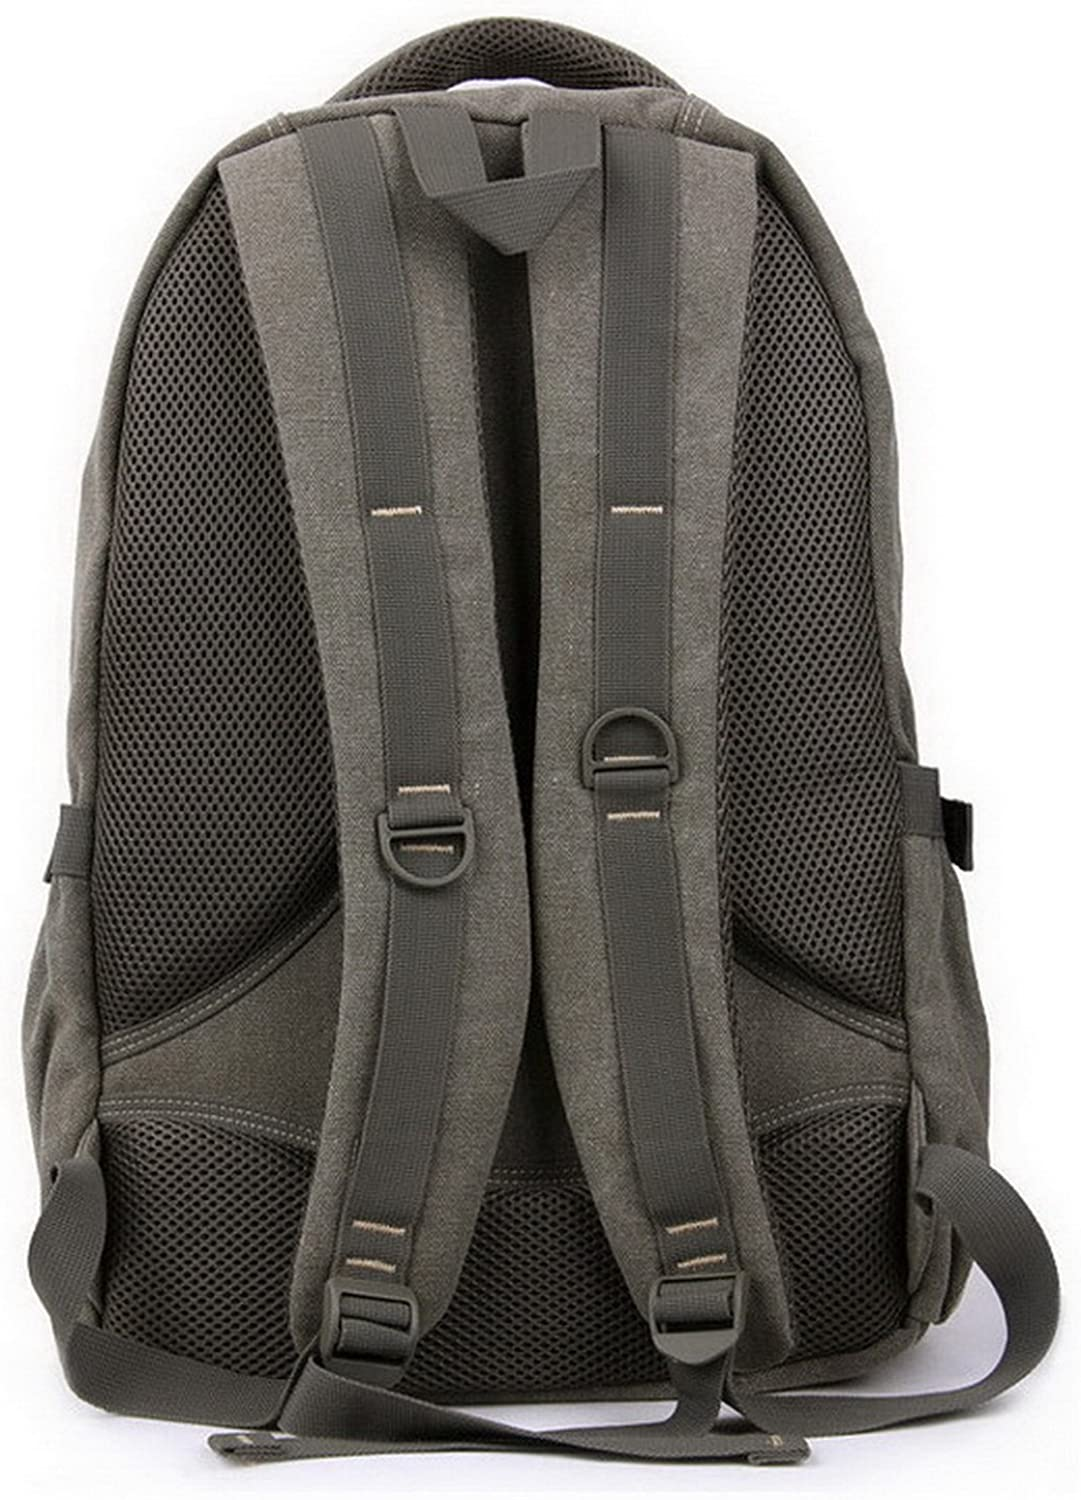 A.K A.K Canvas Backpack TN96305